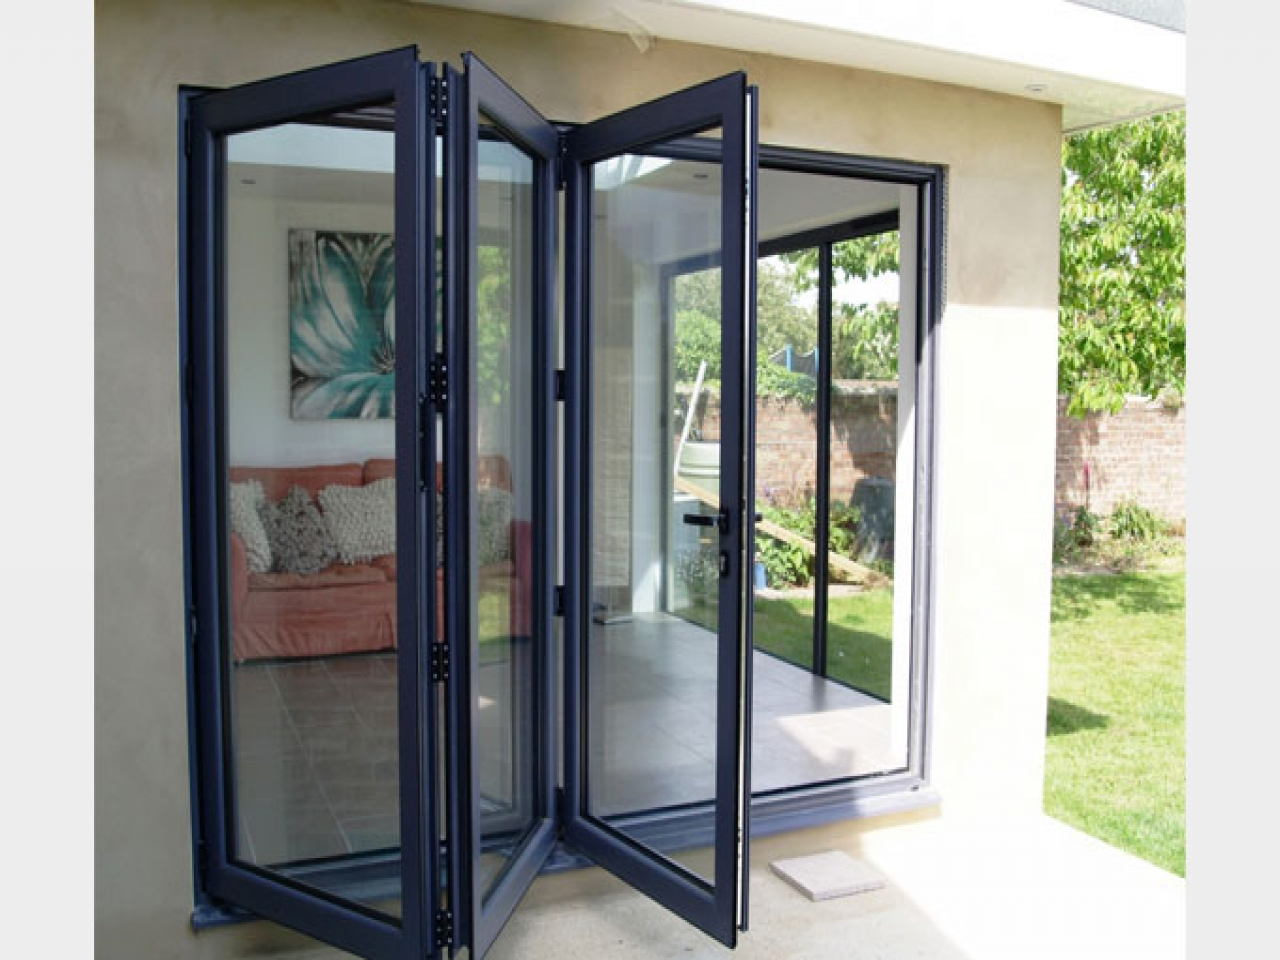 Residential windows doors south coast windows doors for Sliding entry doors